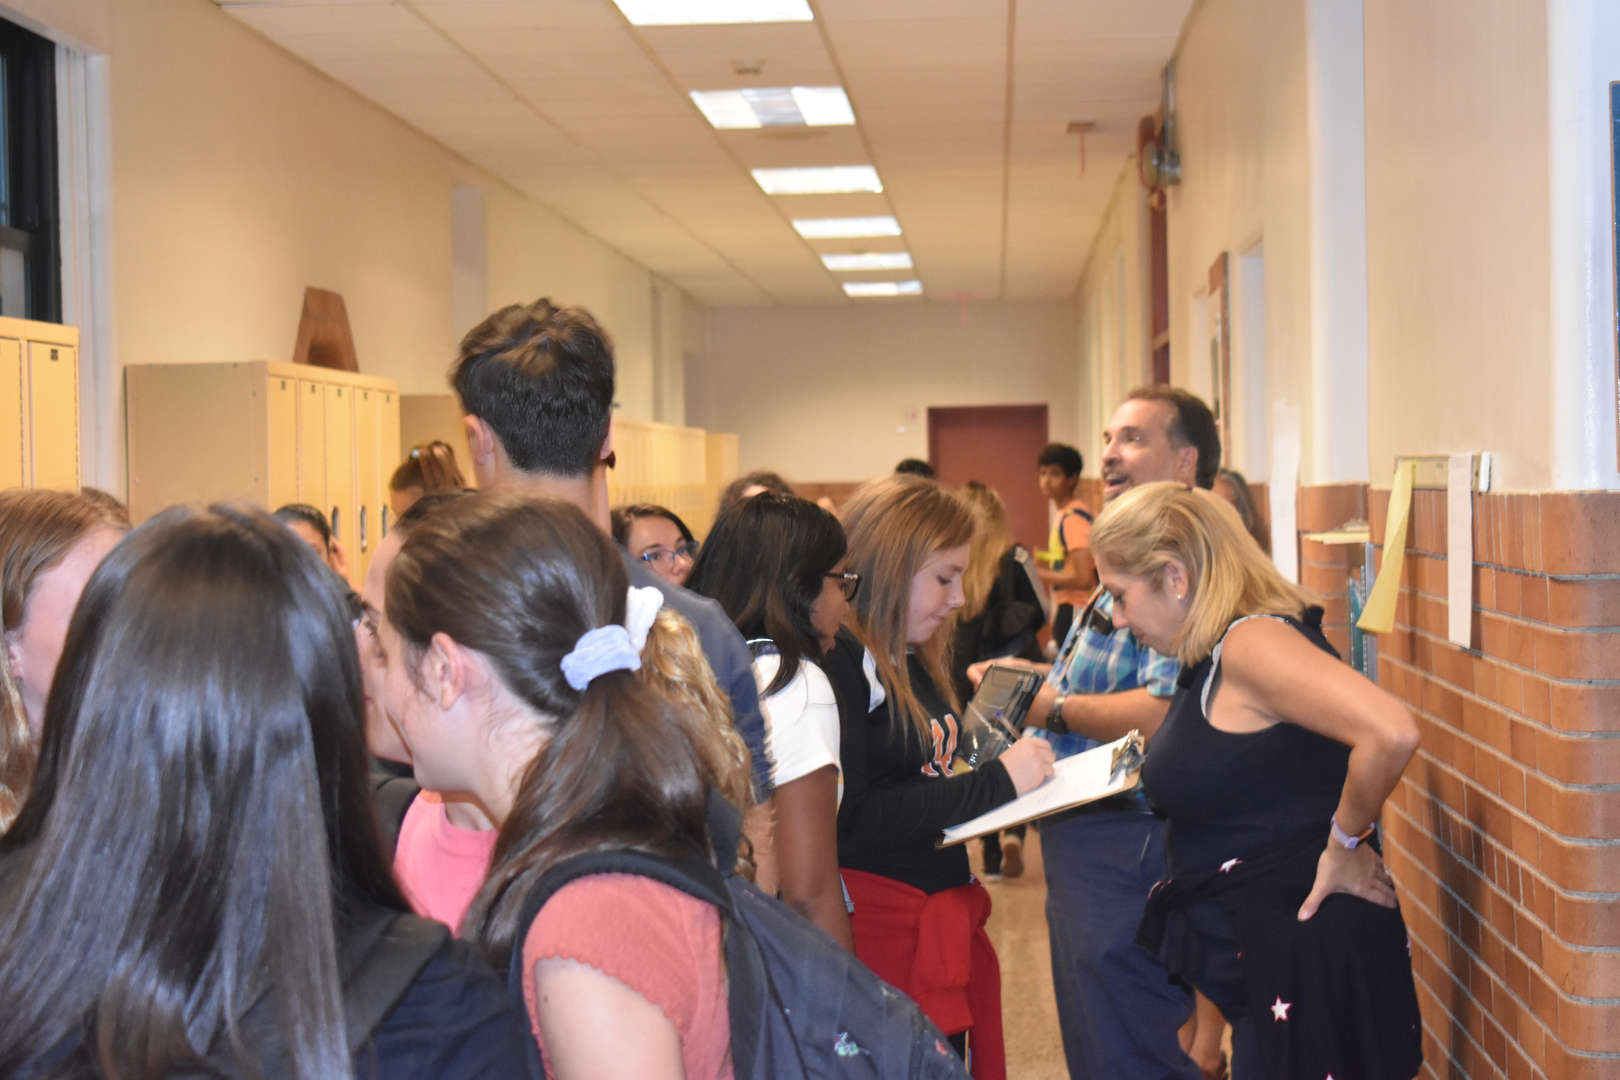 photo of students and teachers in hallway